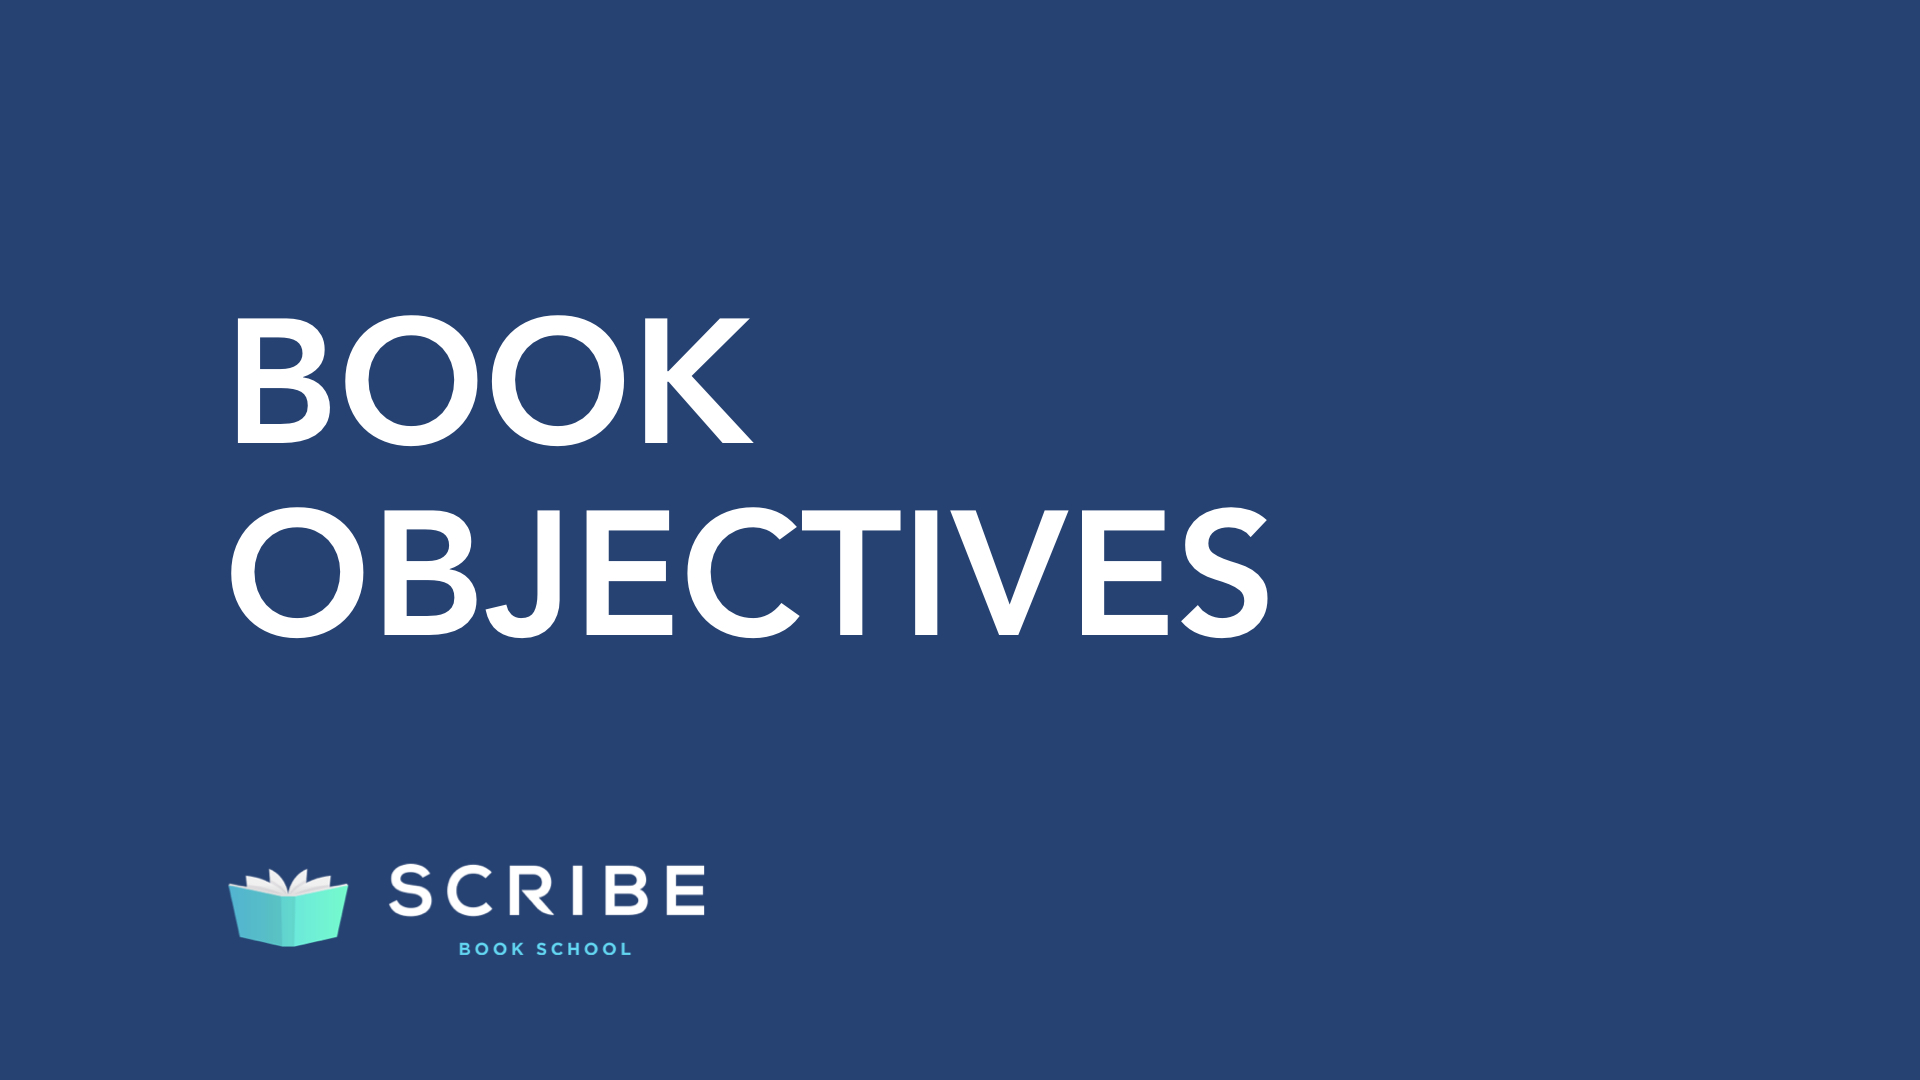 scribe book school objectives